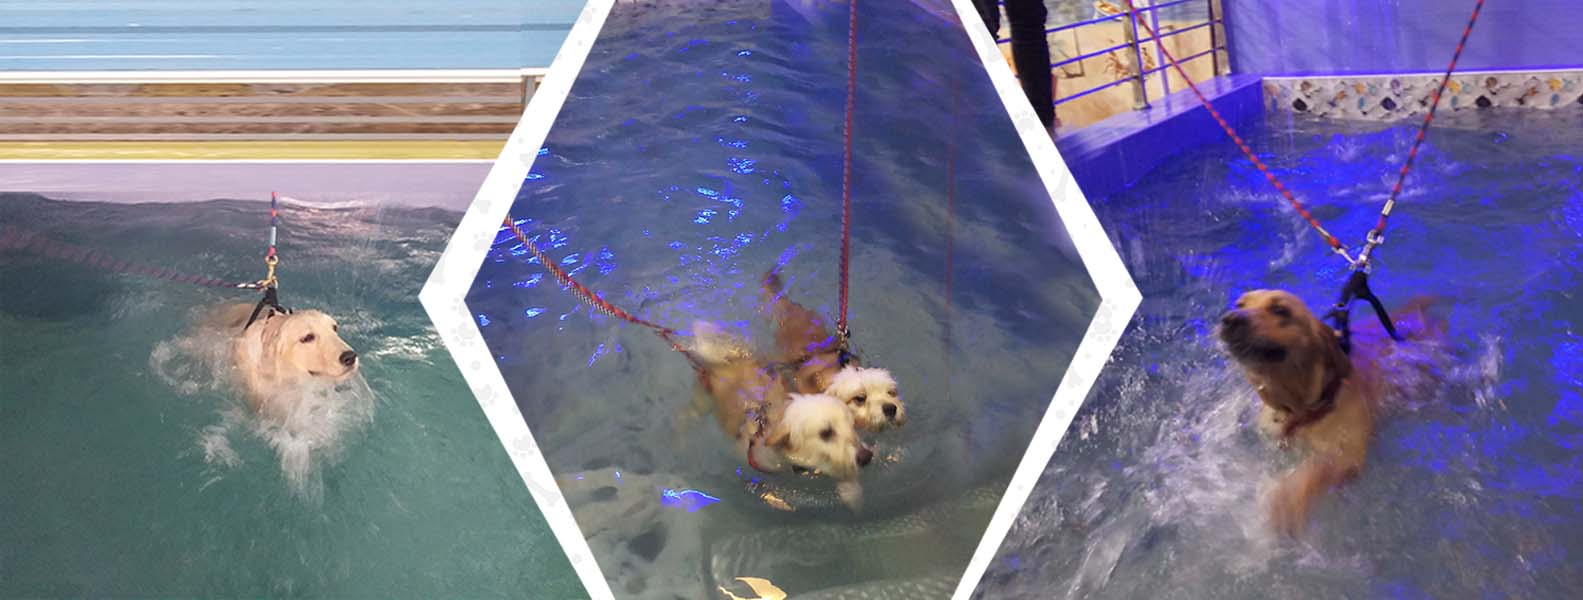 swimming-pool-for-dogs